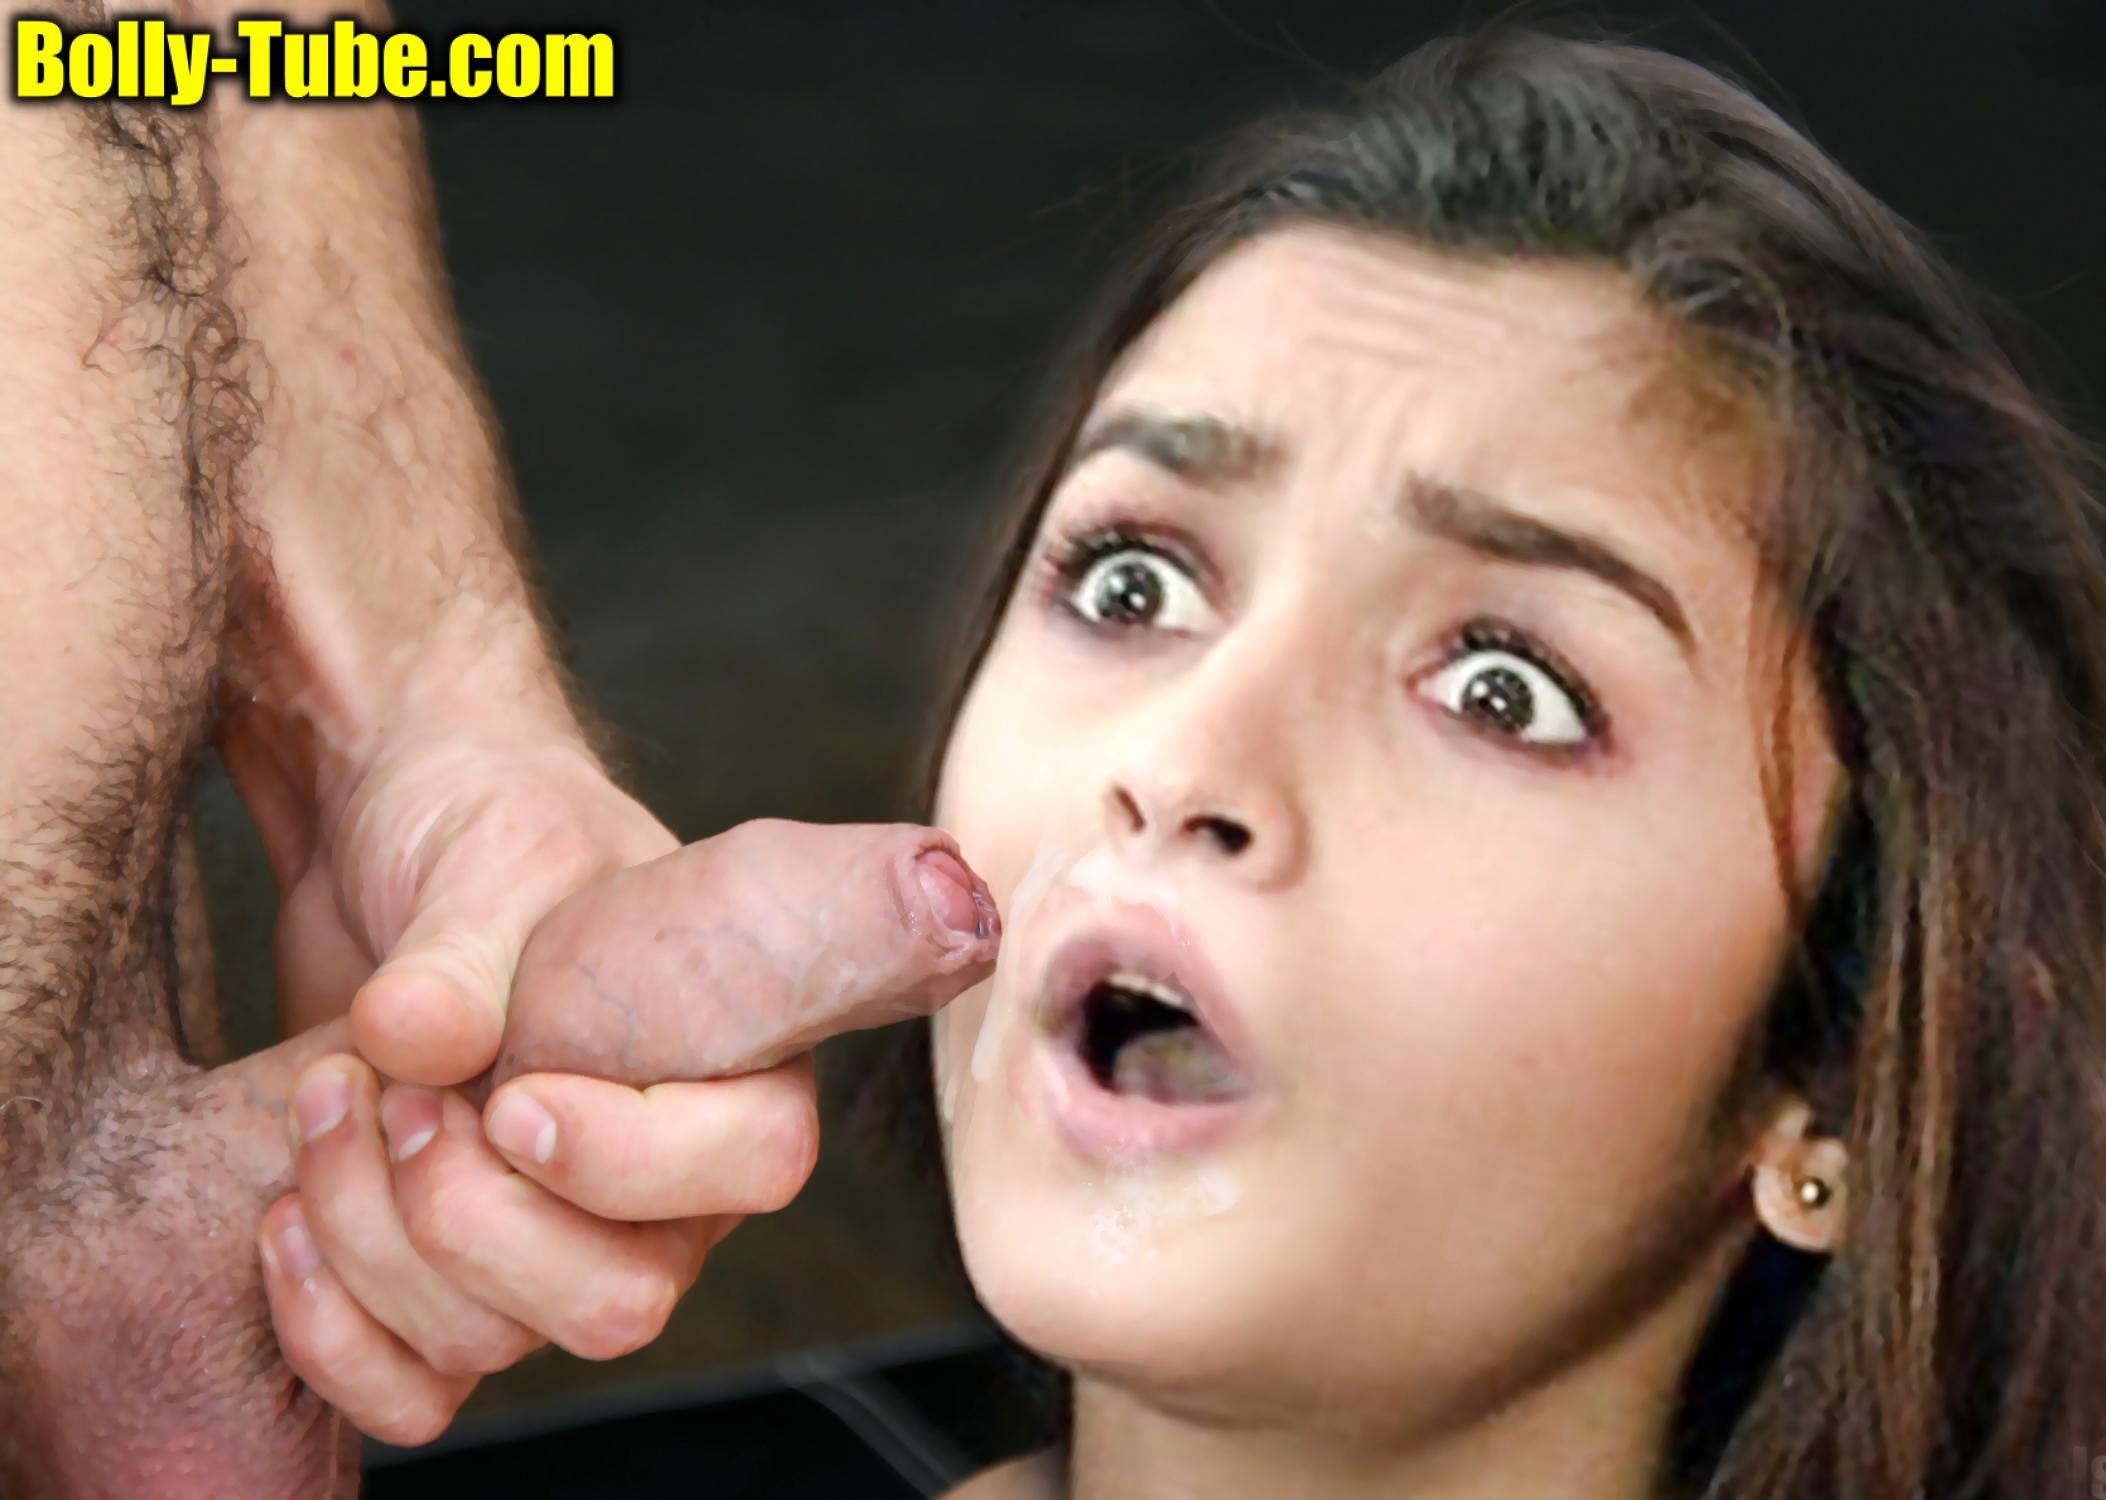 Wide open mouth for blowjob Alia Bhatt cum on her lip